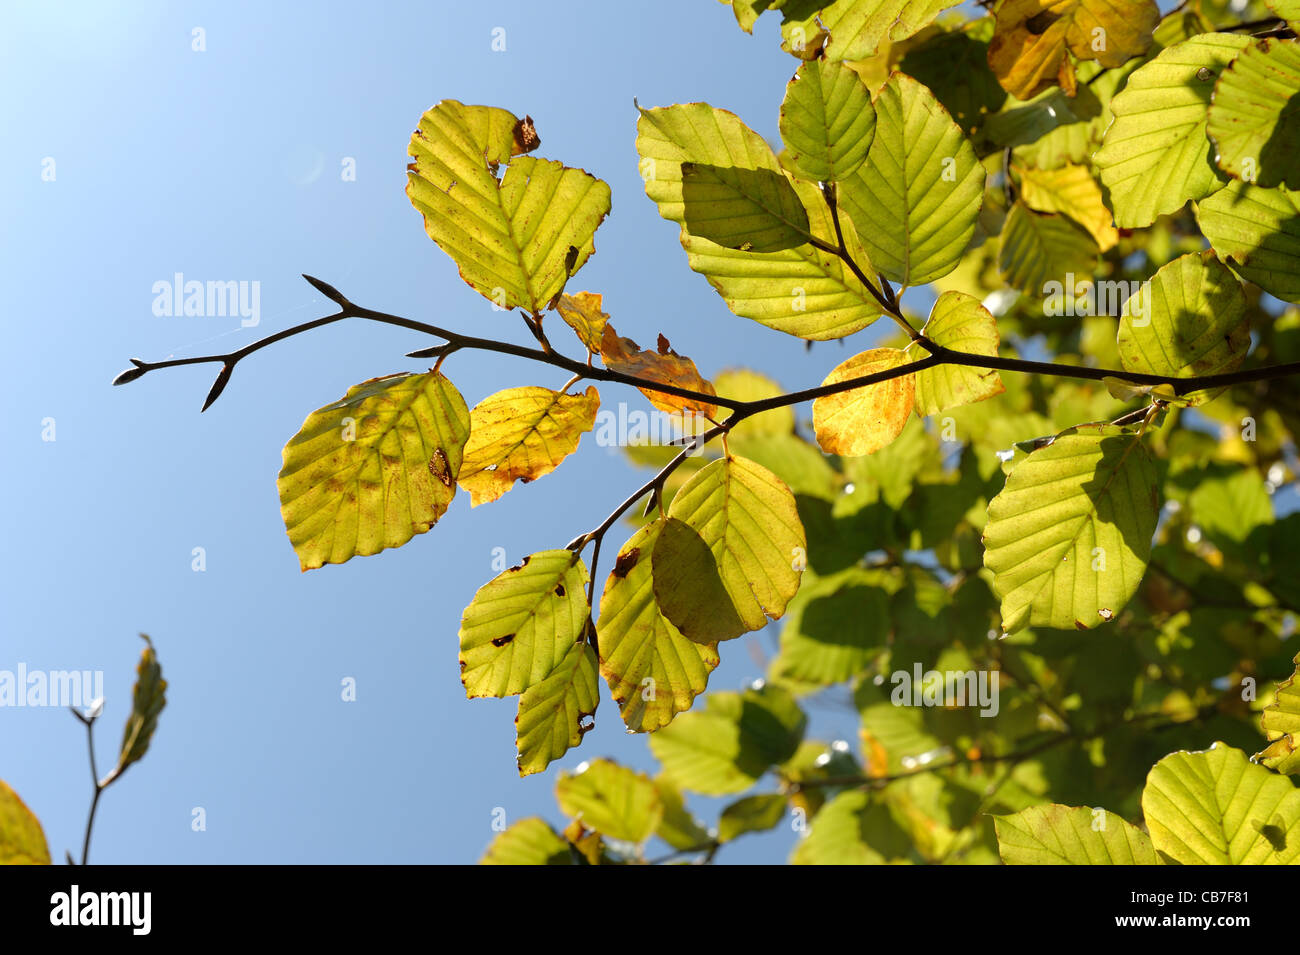 Beech leaves beginning to change colour in autumn against a blue sky - Stock Image